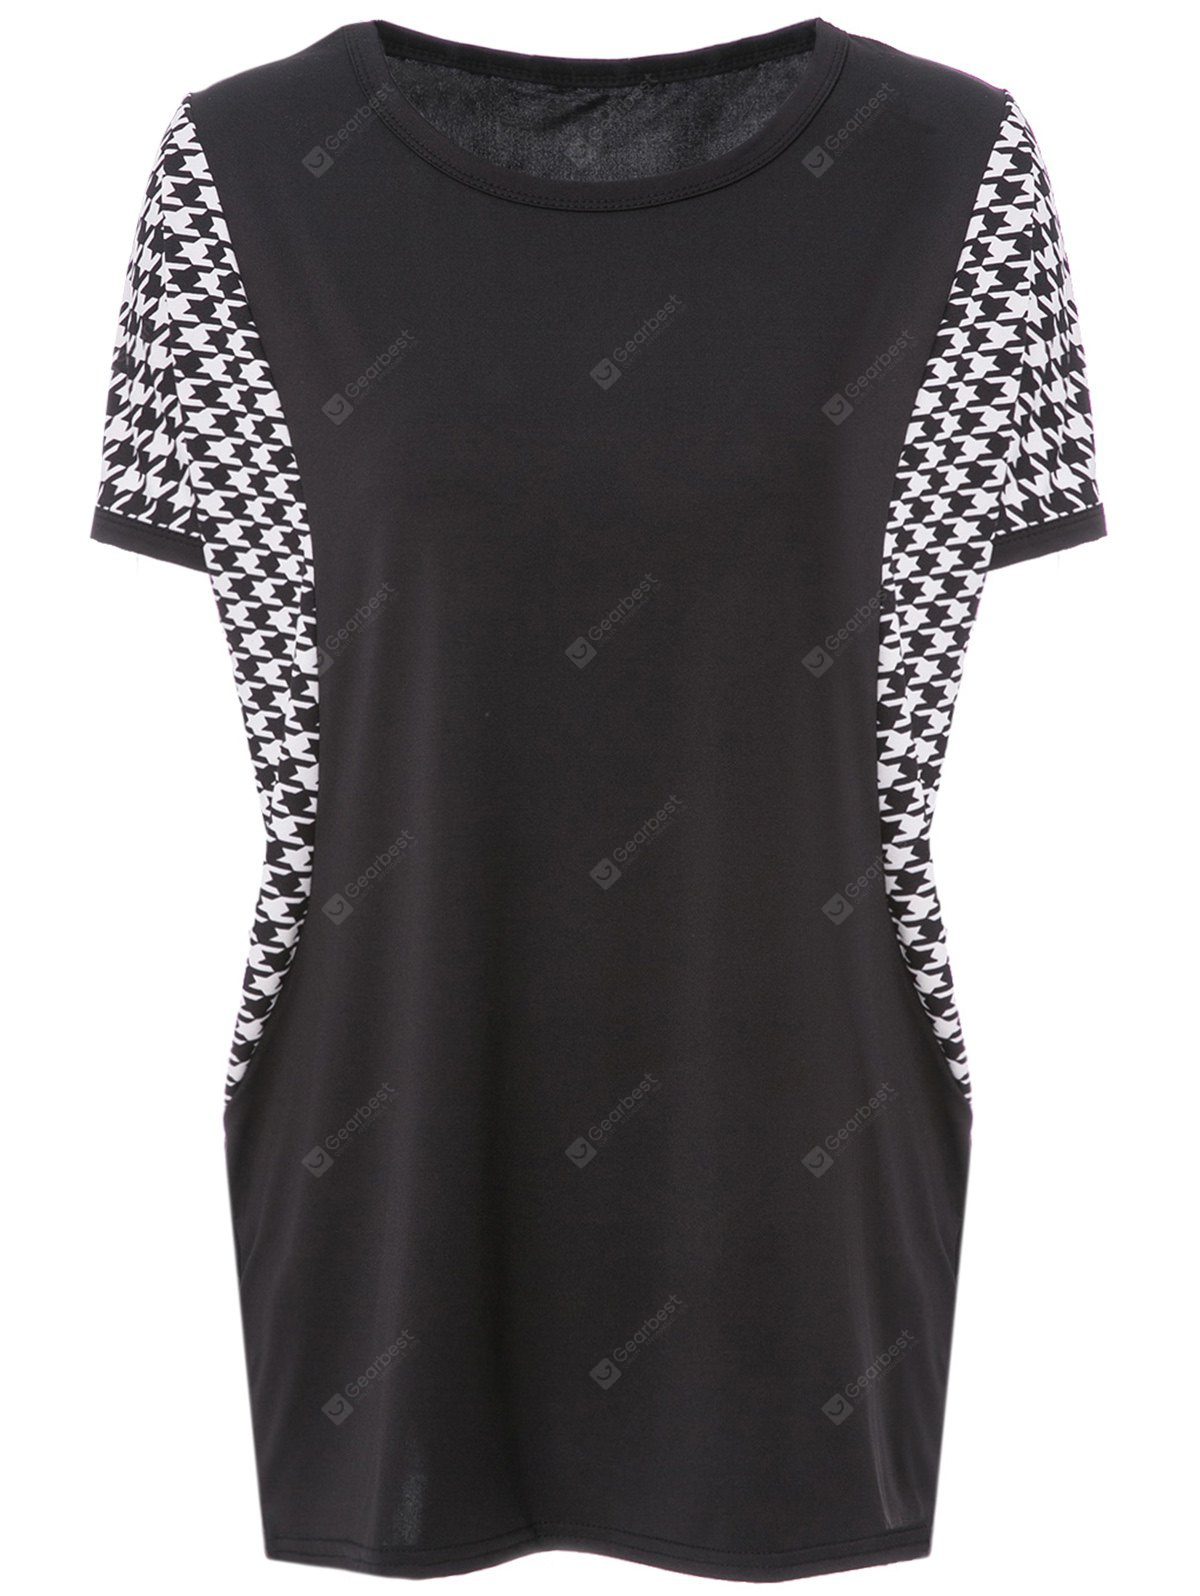 Stylish Scoop Neck Dolman Sleeve Houndstooth T-Shirt For Women